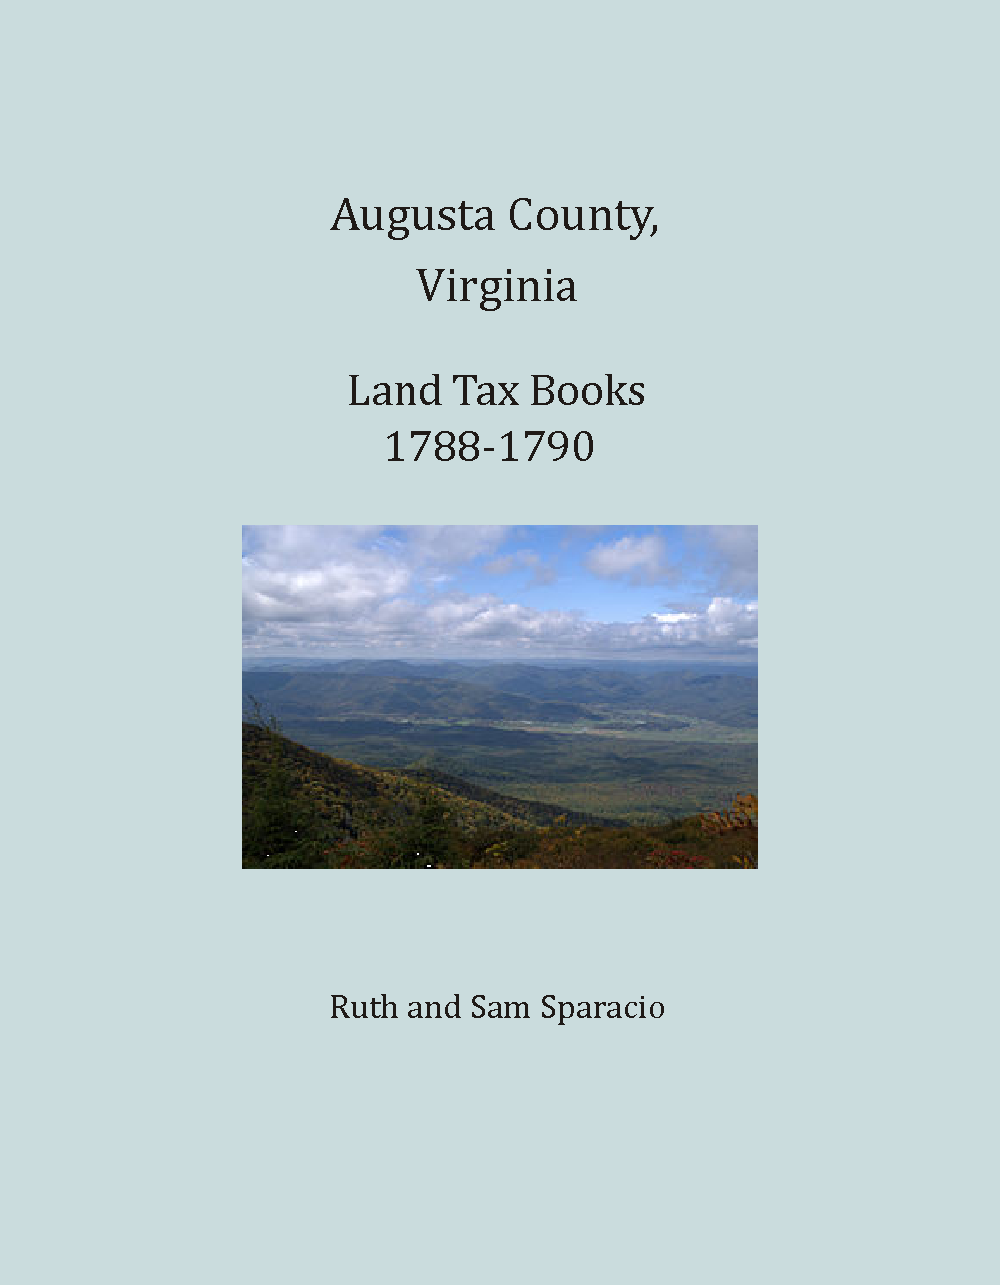 Augusta County, Virginia Land Tax Books, 1788-1790